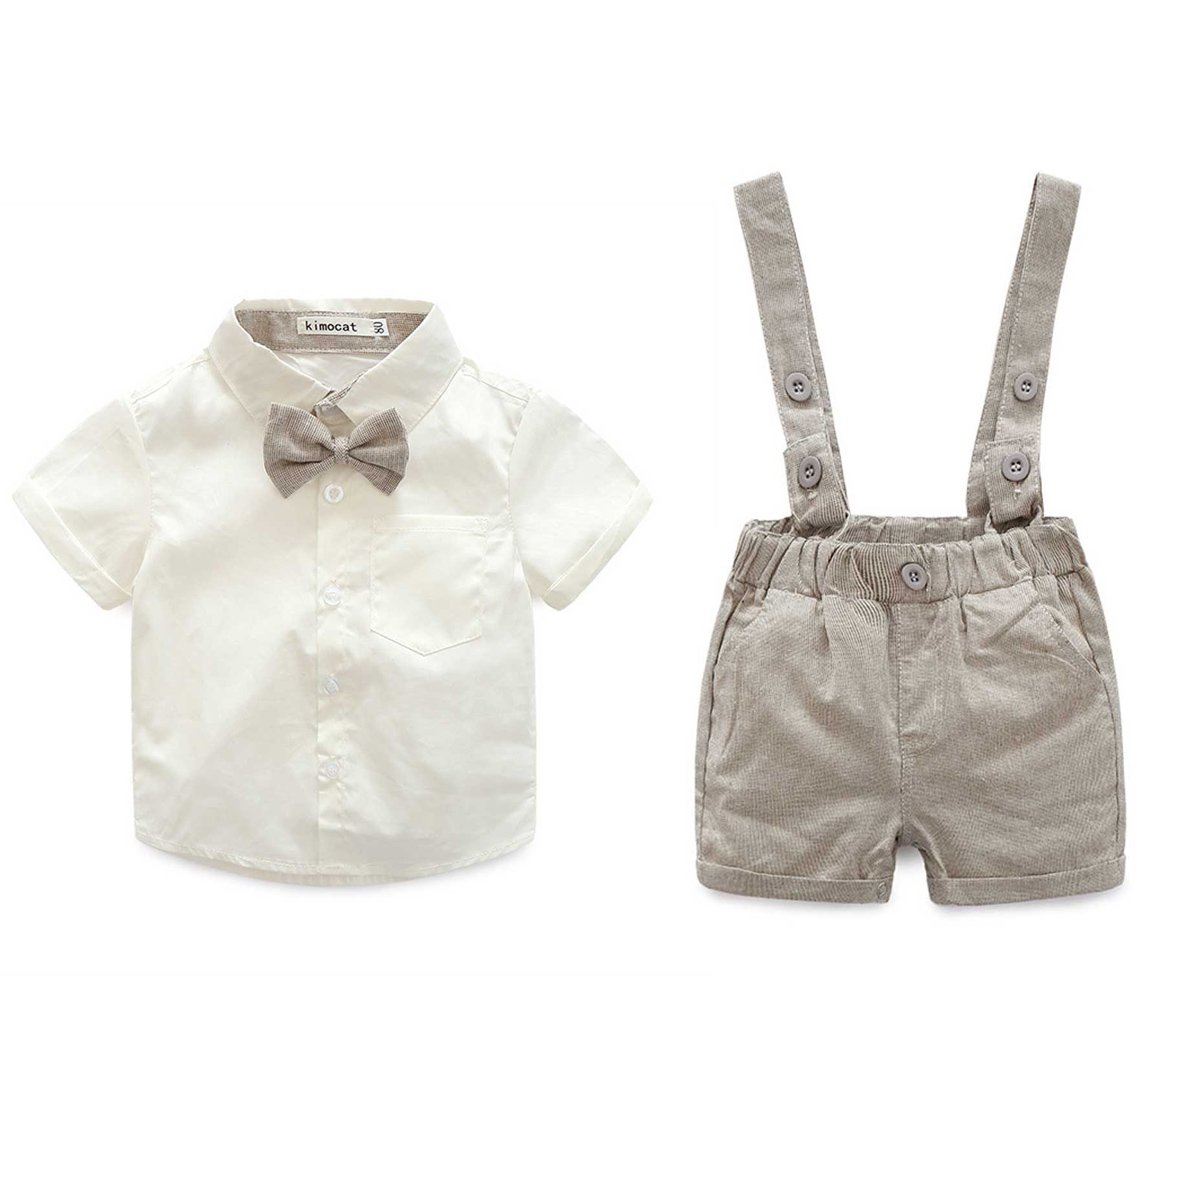 Baby Boys 2Pcs Christening Suits Bowtie Shirt Top + Suspenders Strap Shorts, Formal Kids Party Outfit Gentleman Clothing Sets 0-24 M